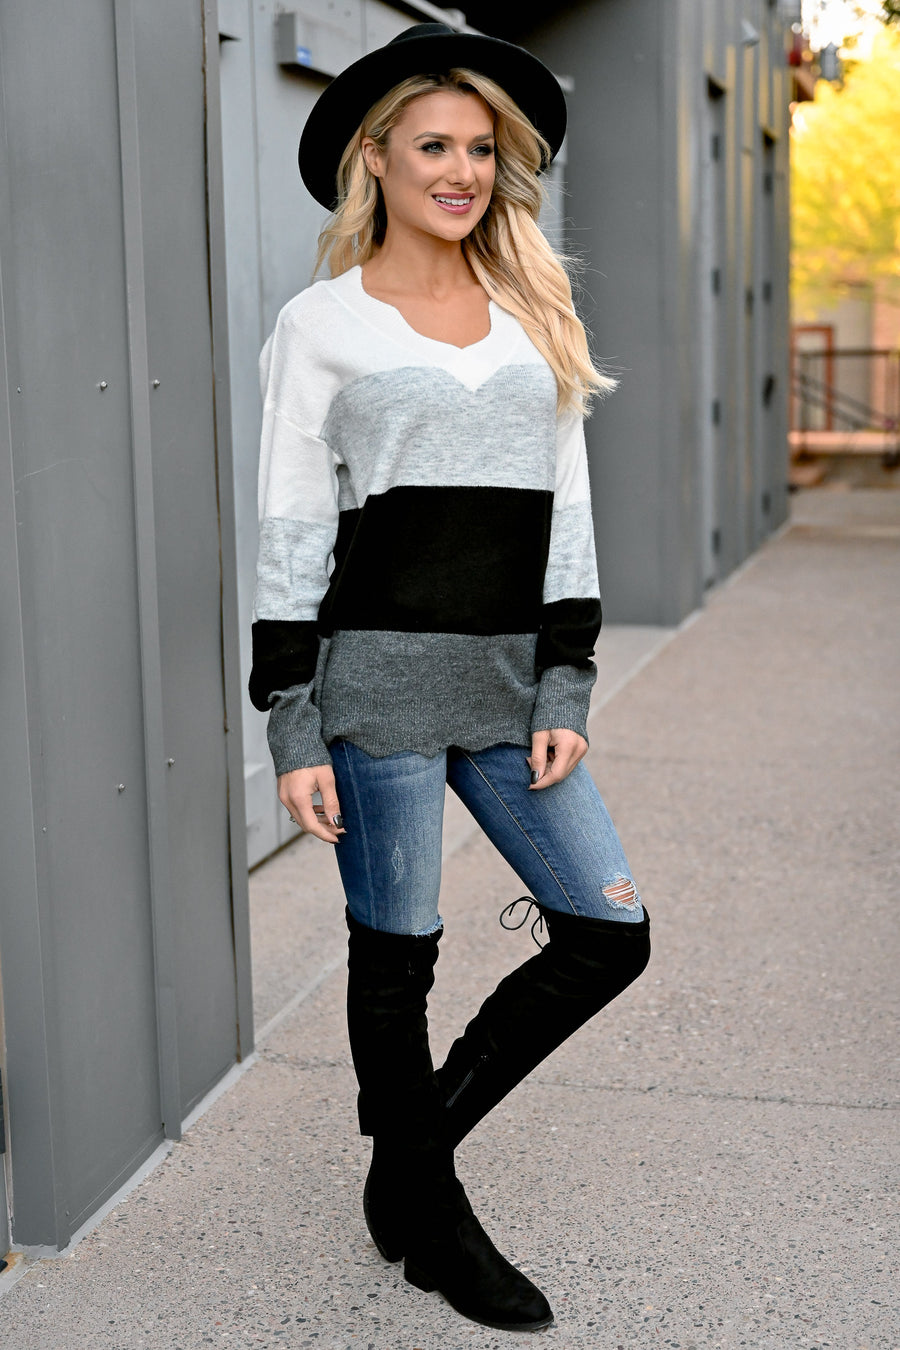 Too Much Spice Scallop V-Neck Top - Black & Grey womens trendy color block scallop detail long sleeve top closet candy front